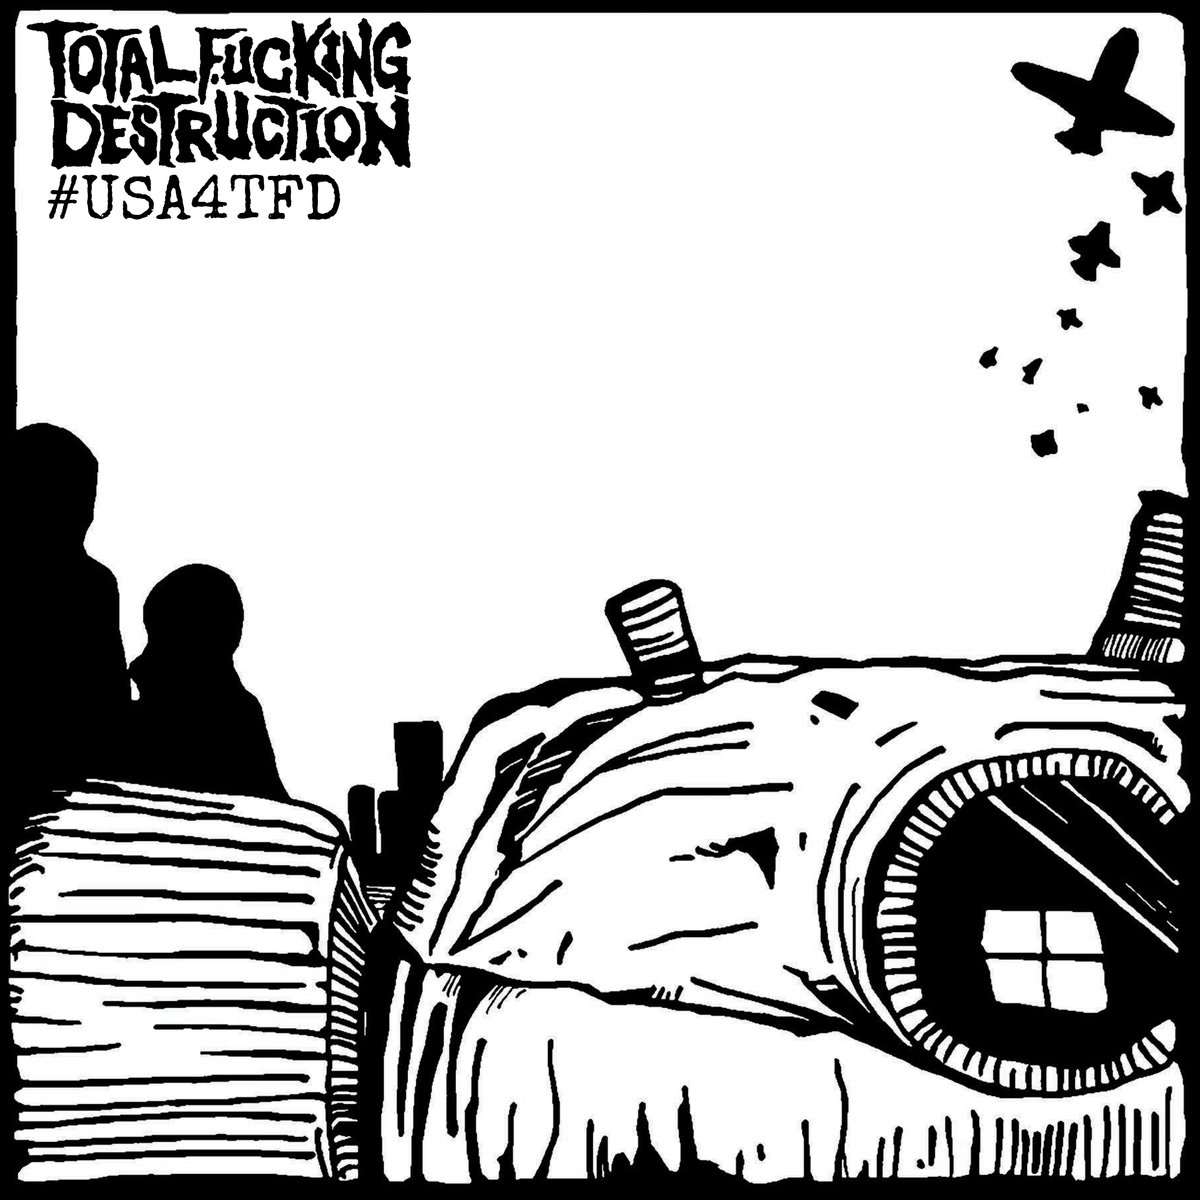 Total Fucking Destruction USA4TFD